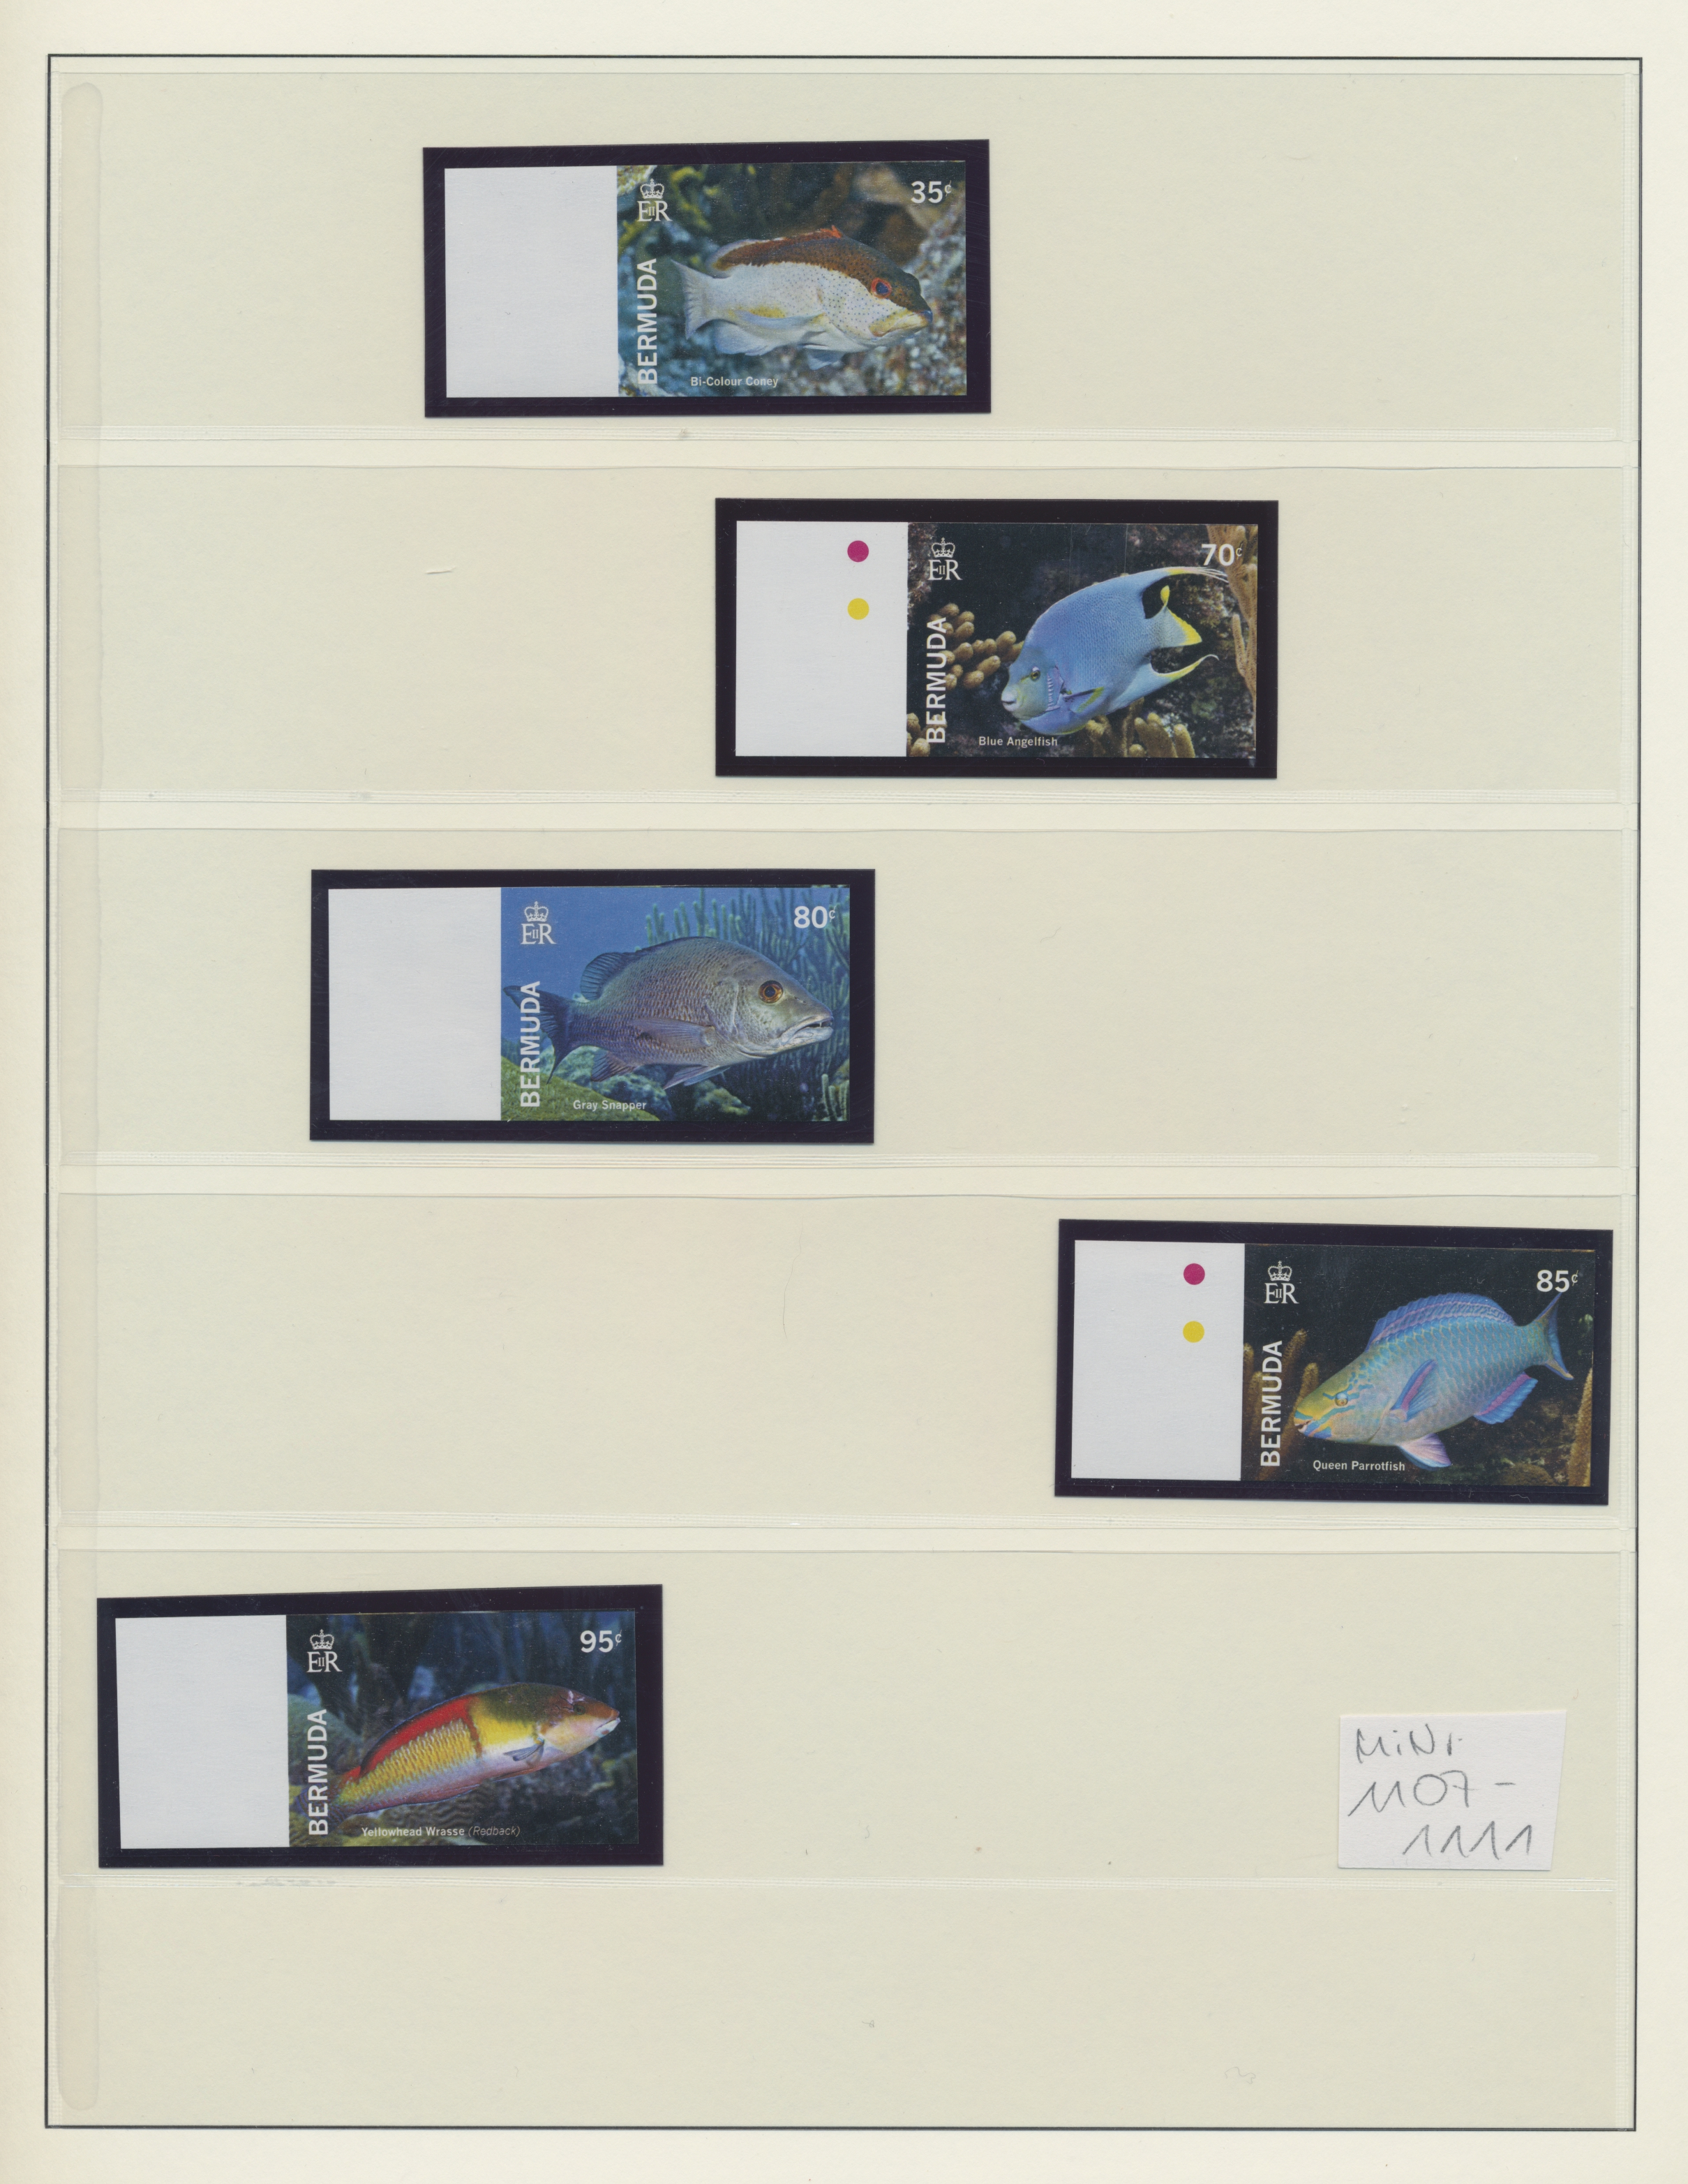 Stamp Auction - bermuda-inseln - Sale #44 Collections Overseas